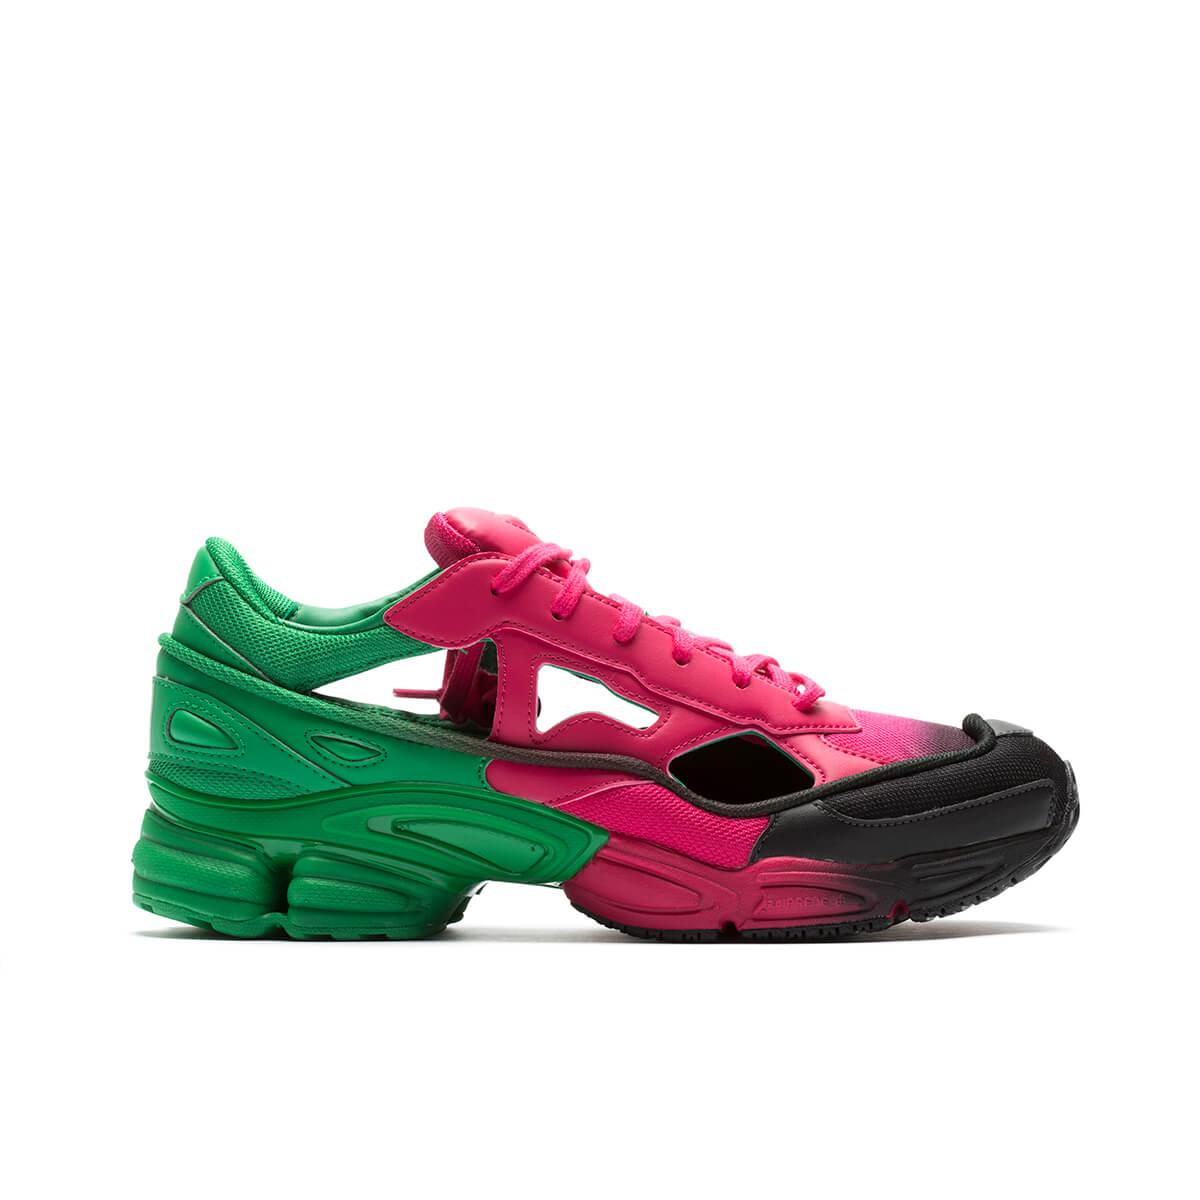 f74822367 Lyst - adidas By Raf Simons Replicant Ozweego Sneakers in Green for Men